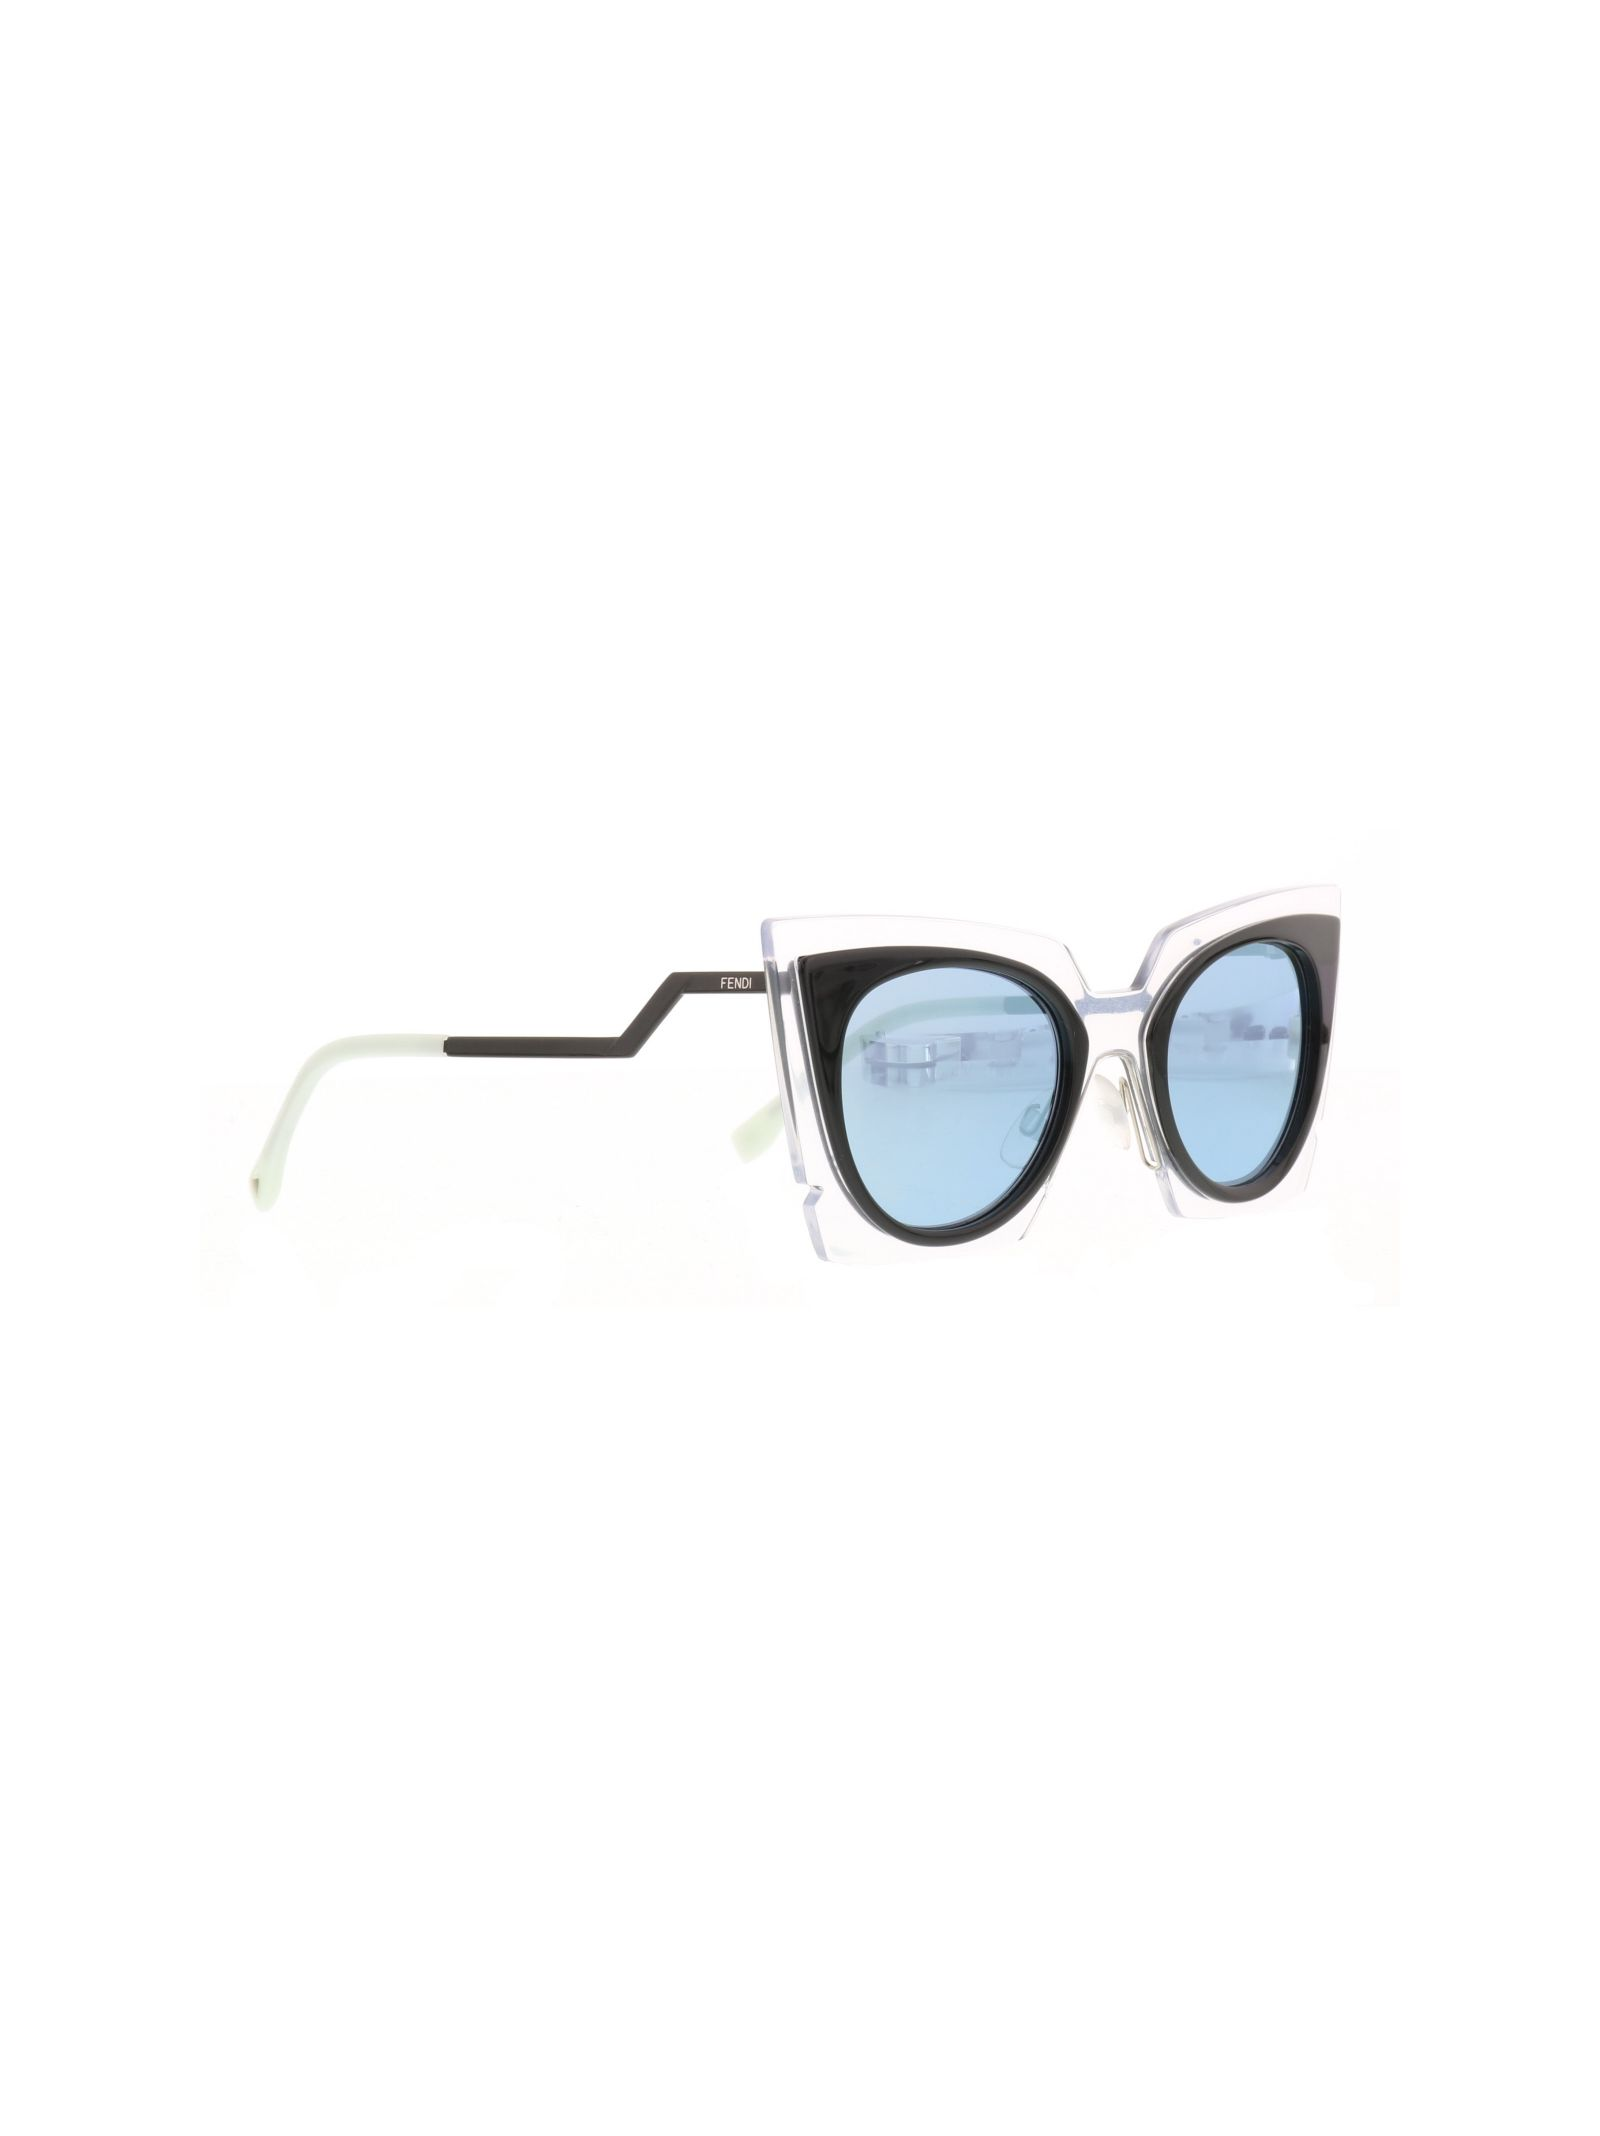 Fendi Eyeshine Sunglasses - Fendi - Andrea 2